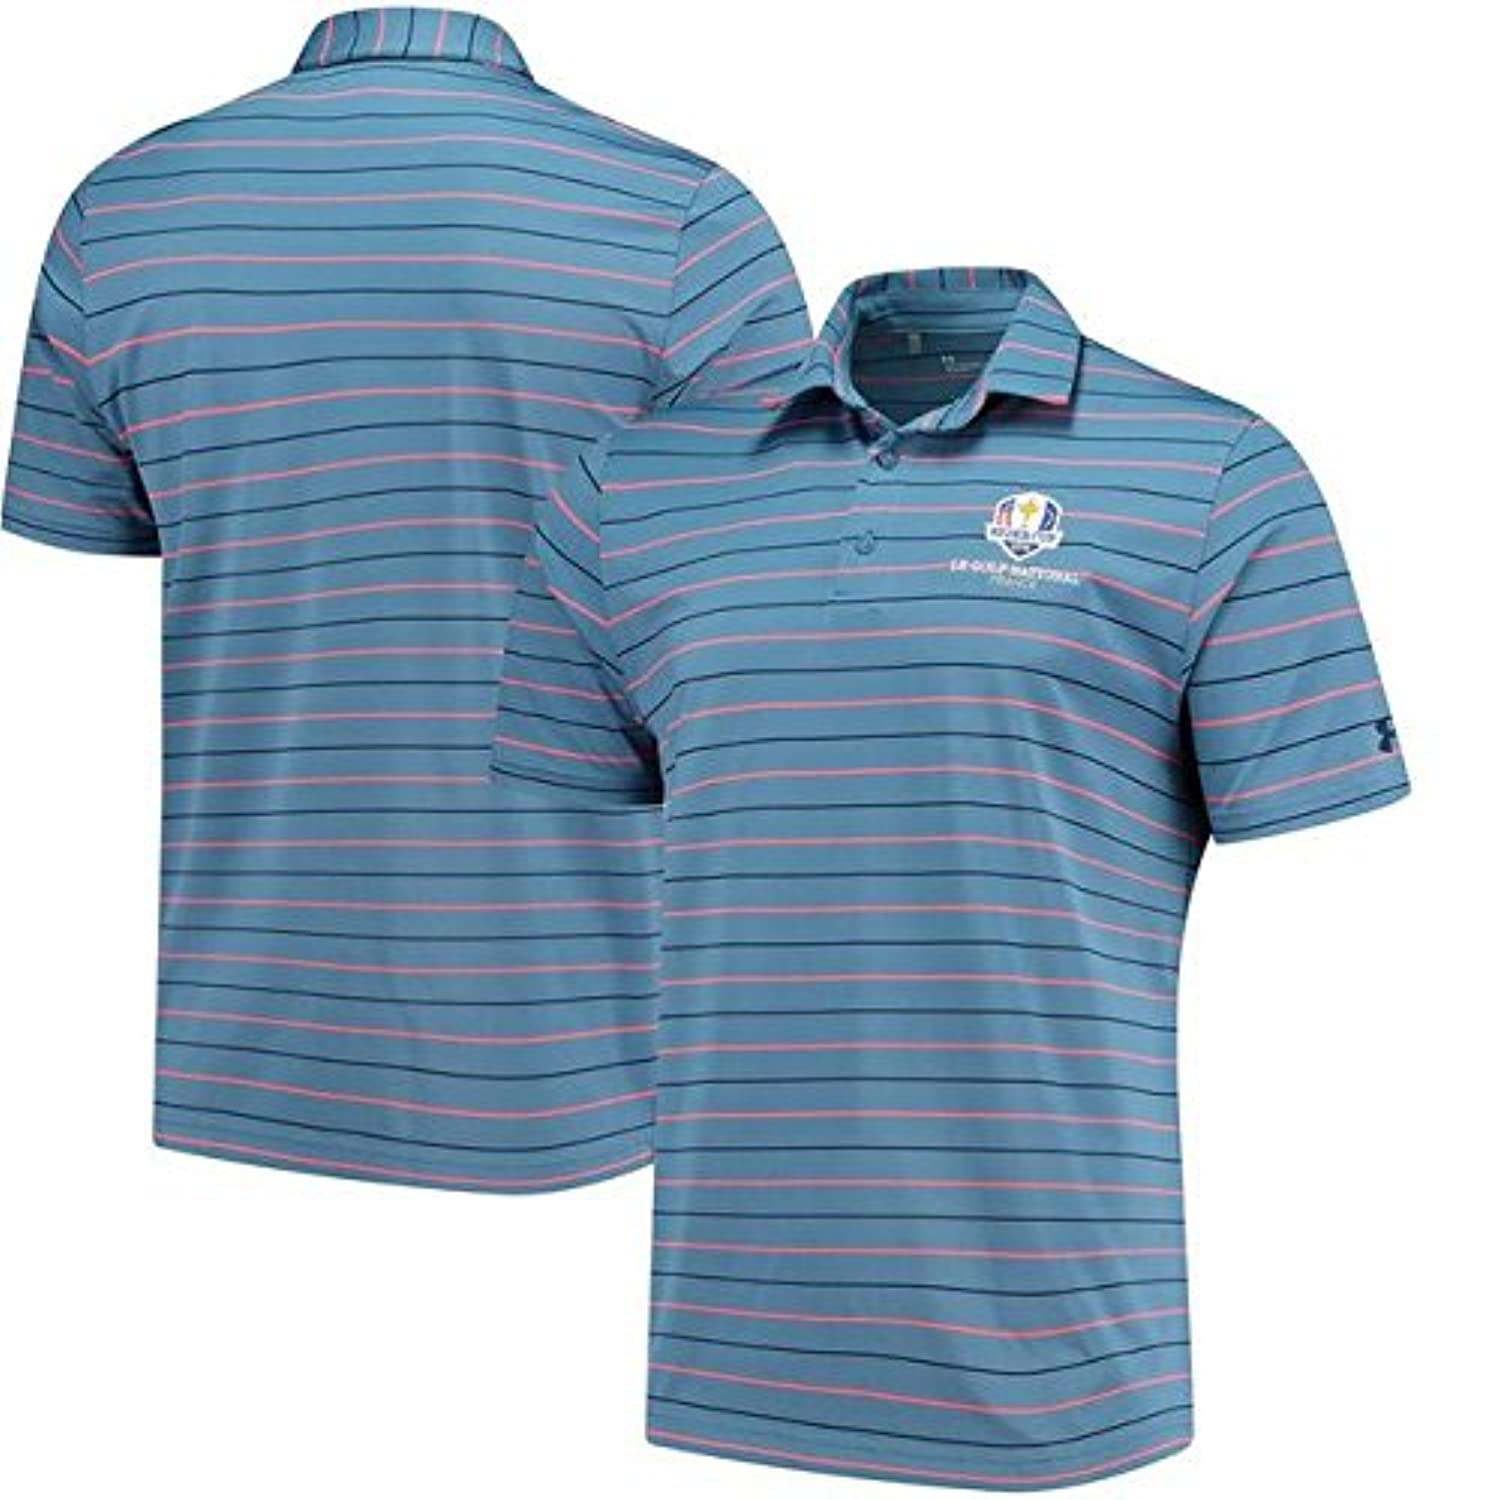 Under Armour Under Armour Navy/Orange 2018 Ryder Cup Stripe 2.0 Performance Polo スポーツ用品 【並行輸入品】